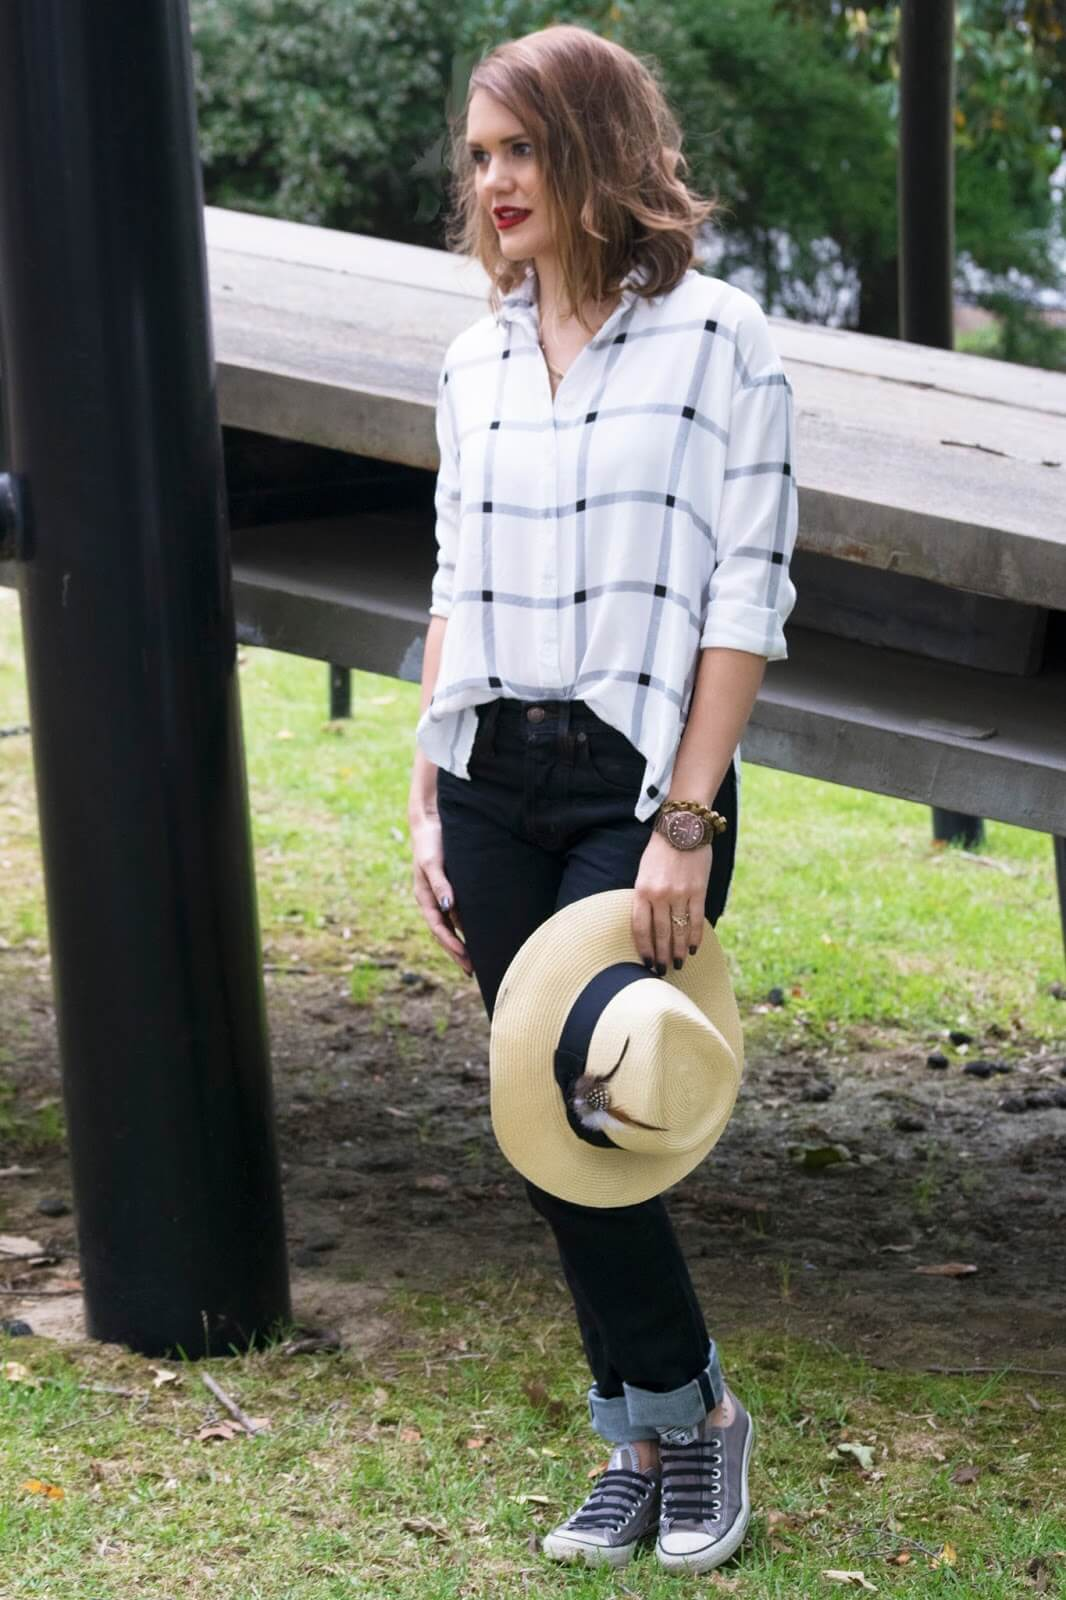 FASHION BLOGGER INTERVIEW WITH CITYCHICLIVING.COM